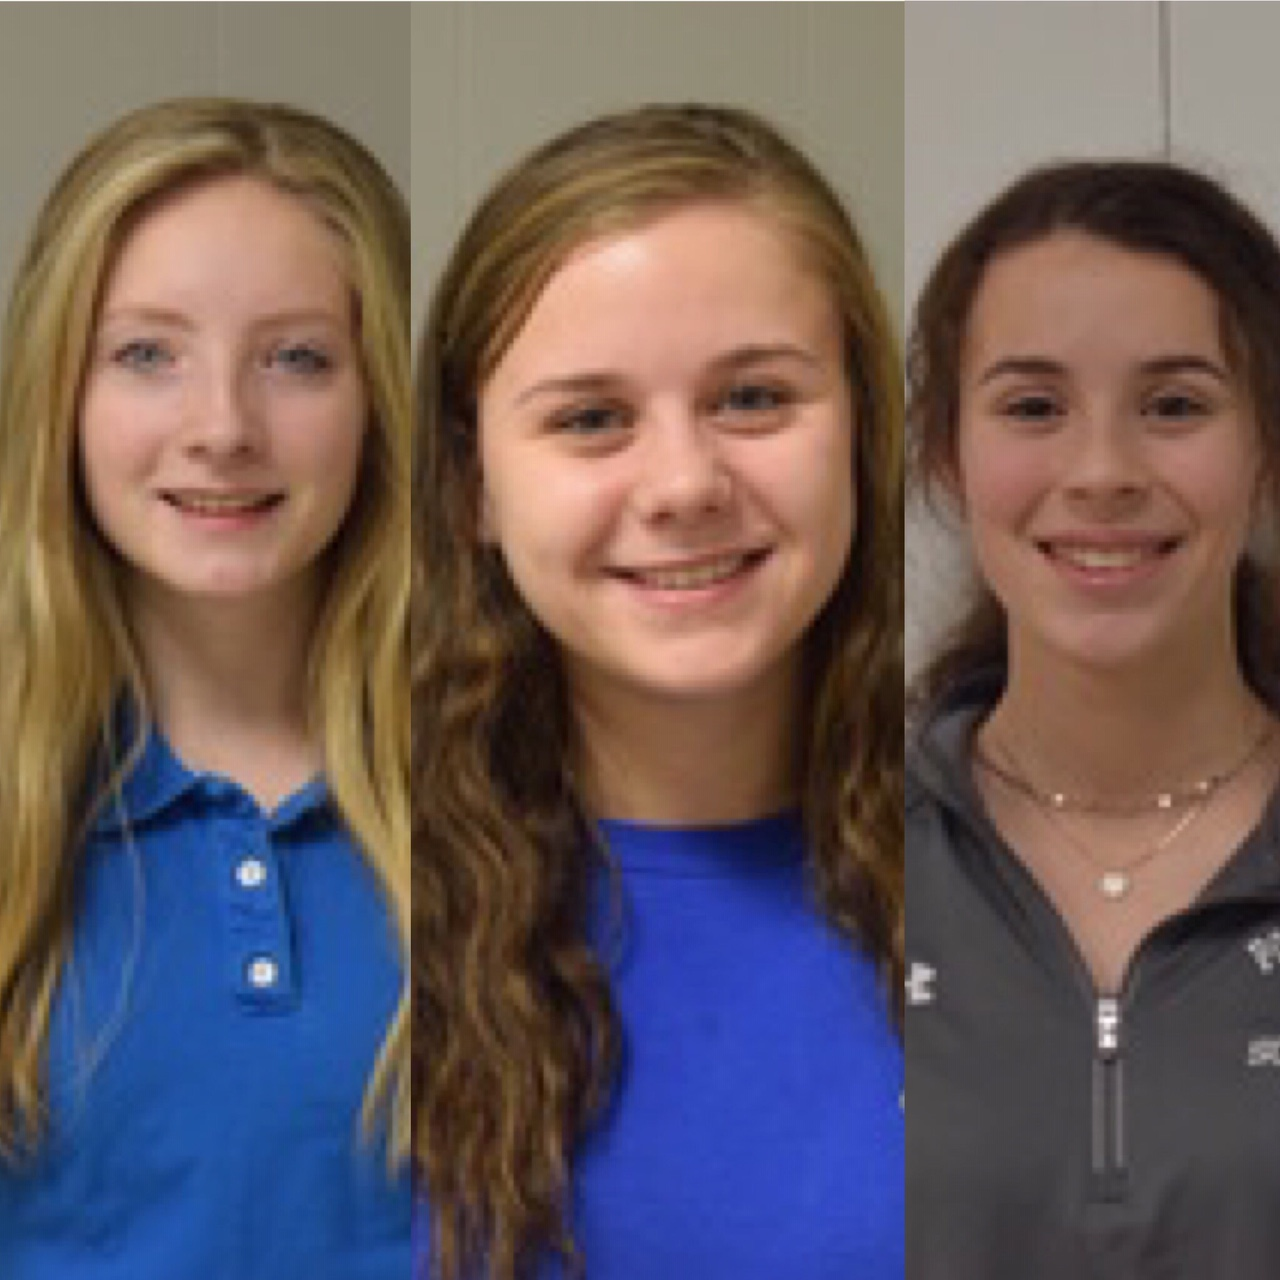 """Pottsville juniors: Isabelle Myers, Madison Dalton, and Anya Wojciechowksy are smiles knowing they will represent PAHS at Winter Carnival. They all ran for the title of Snowflake Princess. """"I'm looking forward to meeting new friends,"""" said Dalton."""